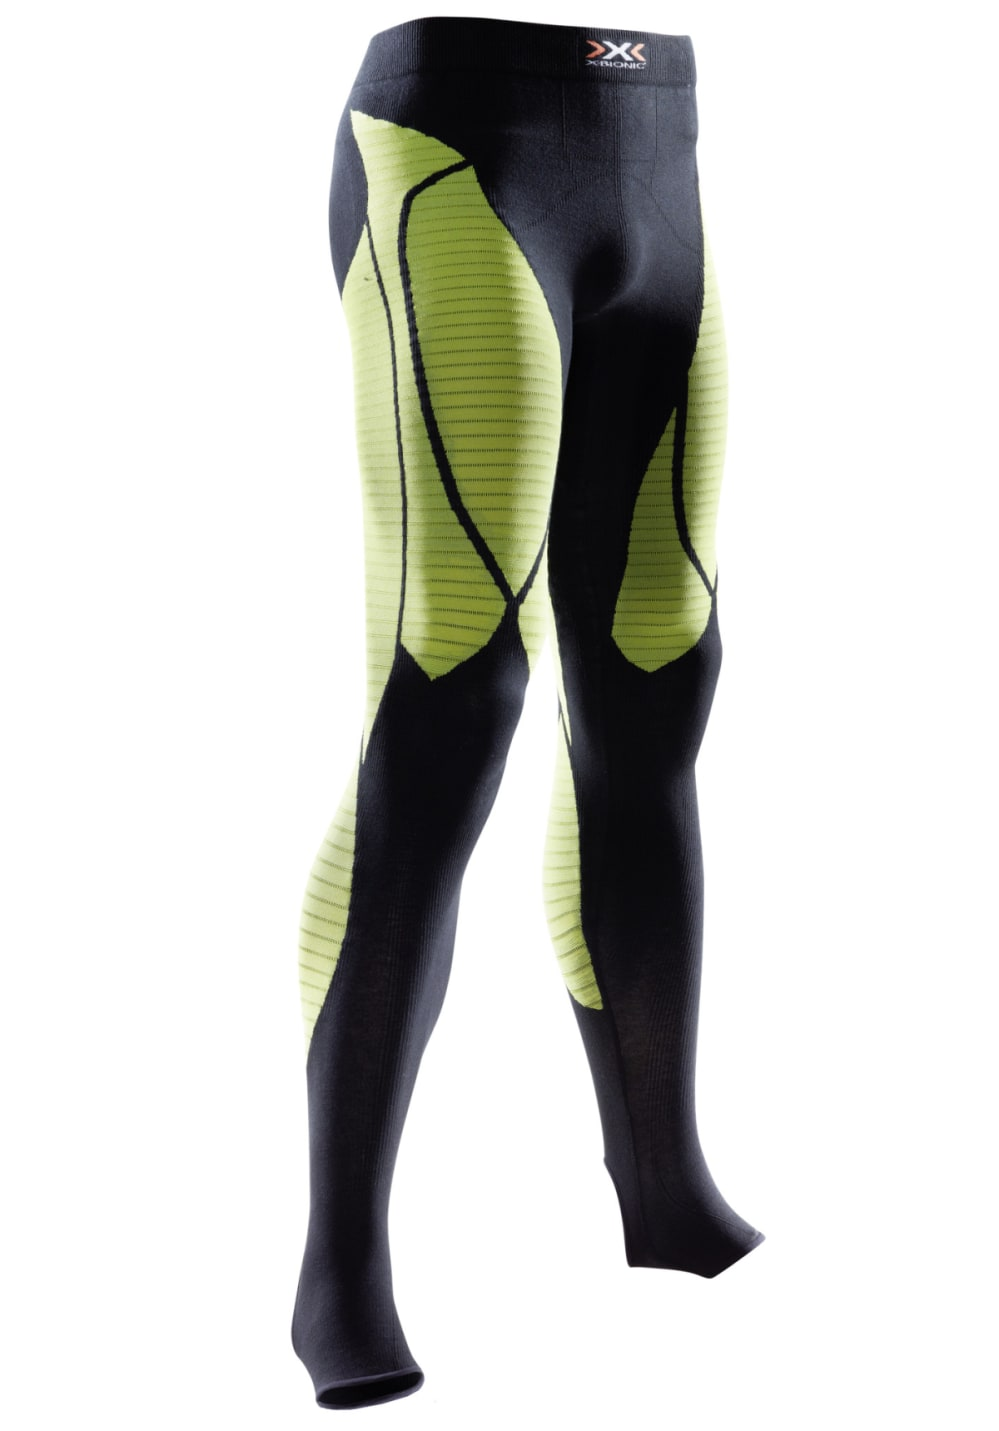 X-Bionic Precuperation / Recovery Long Tight - Kompression für Herren - Schwarz